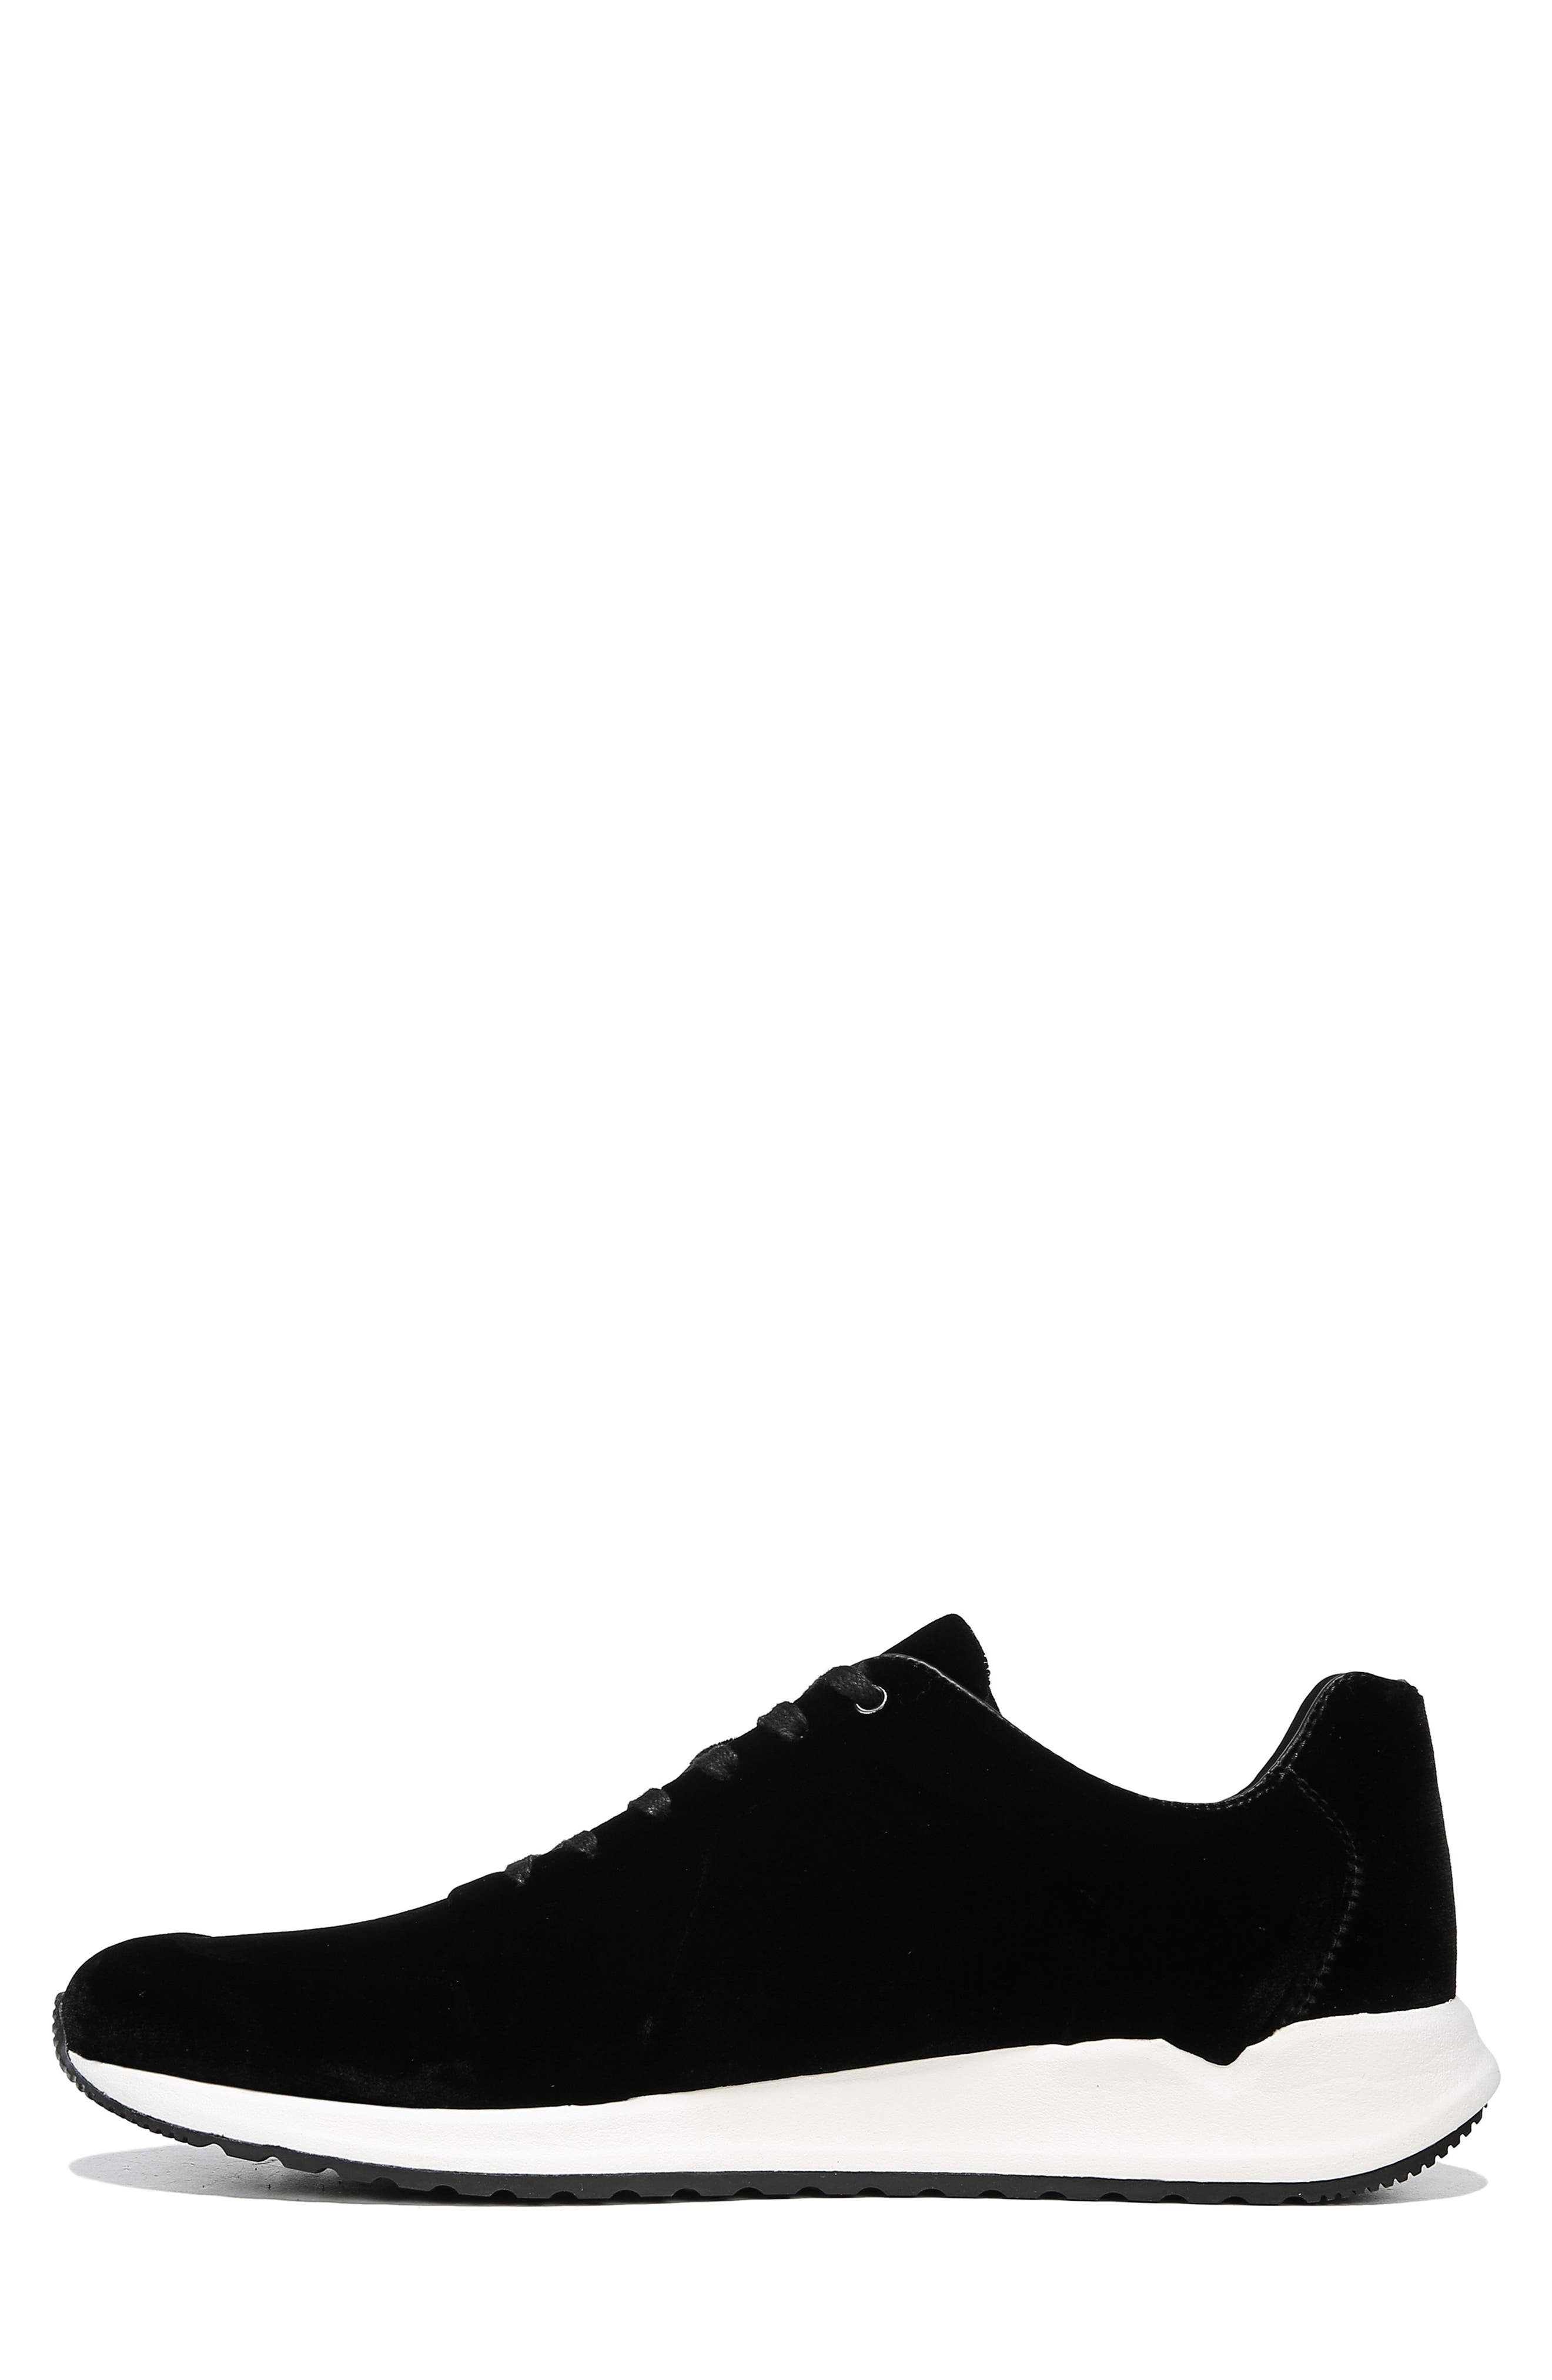 Garret Sneaker,                             Alternate thumbnail 8, color,                             BLACK